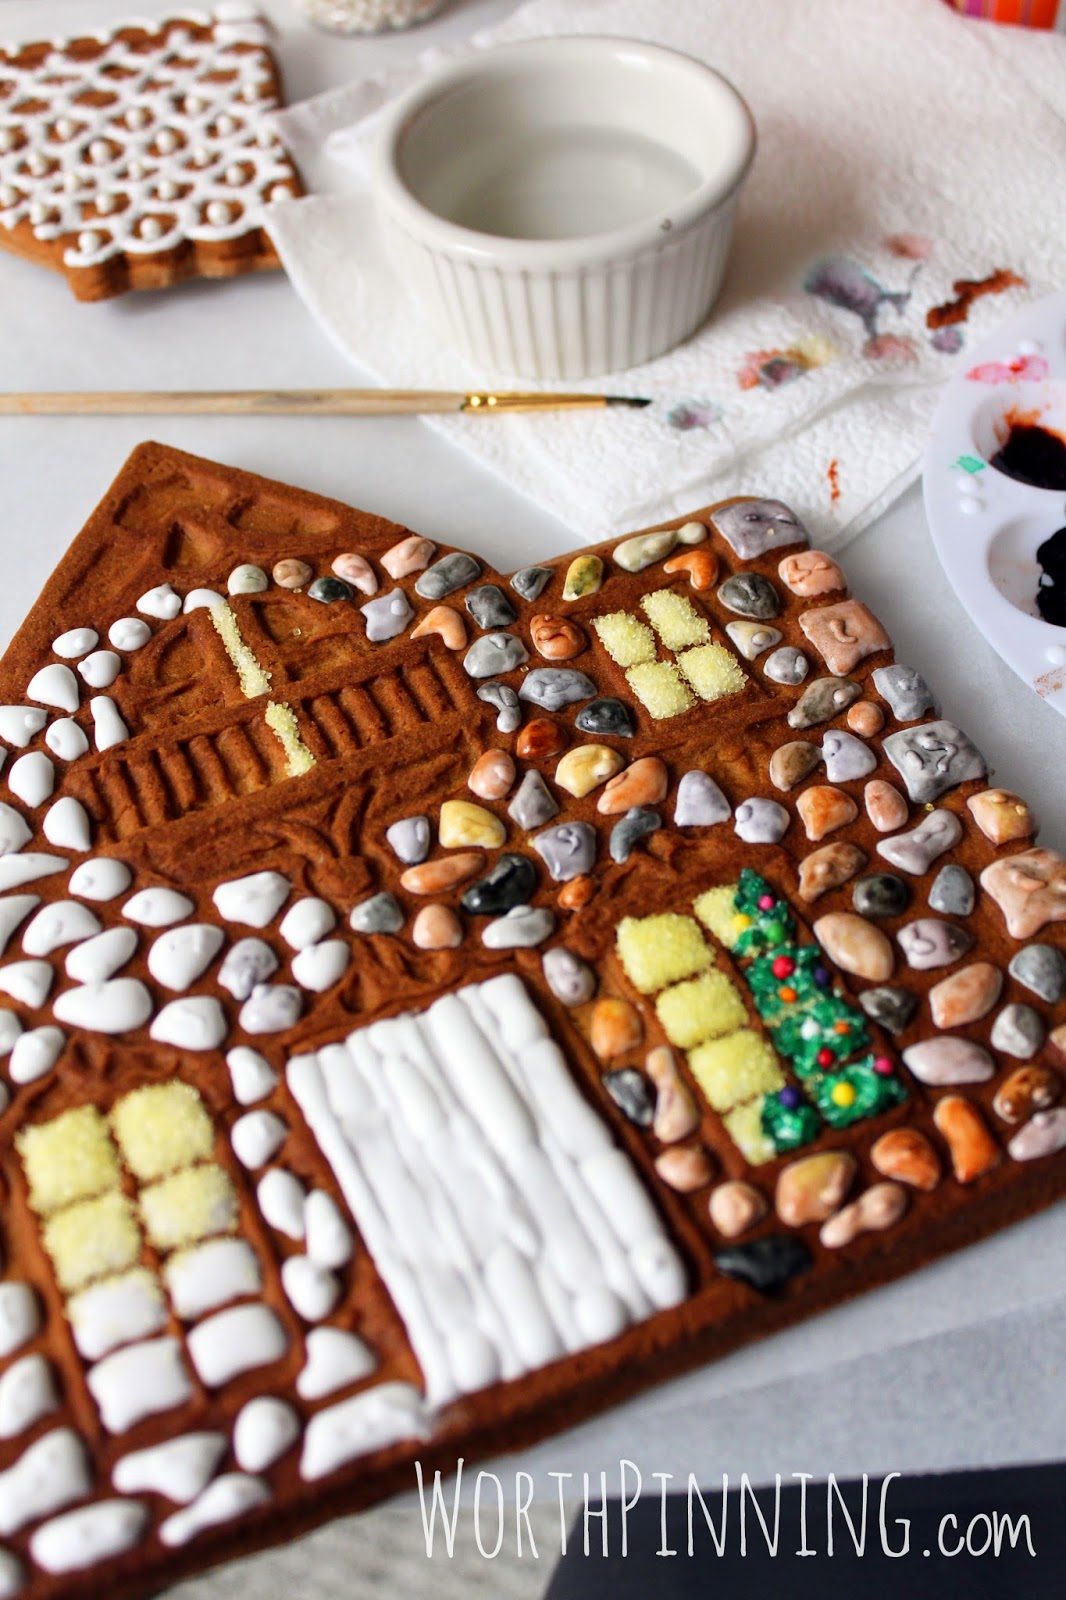 Worth Pinning Stone Gingerbread House